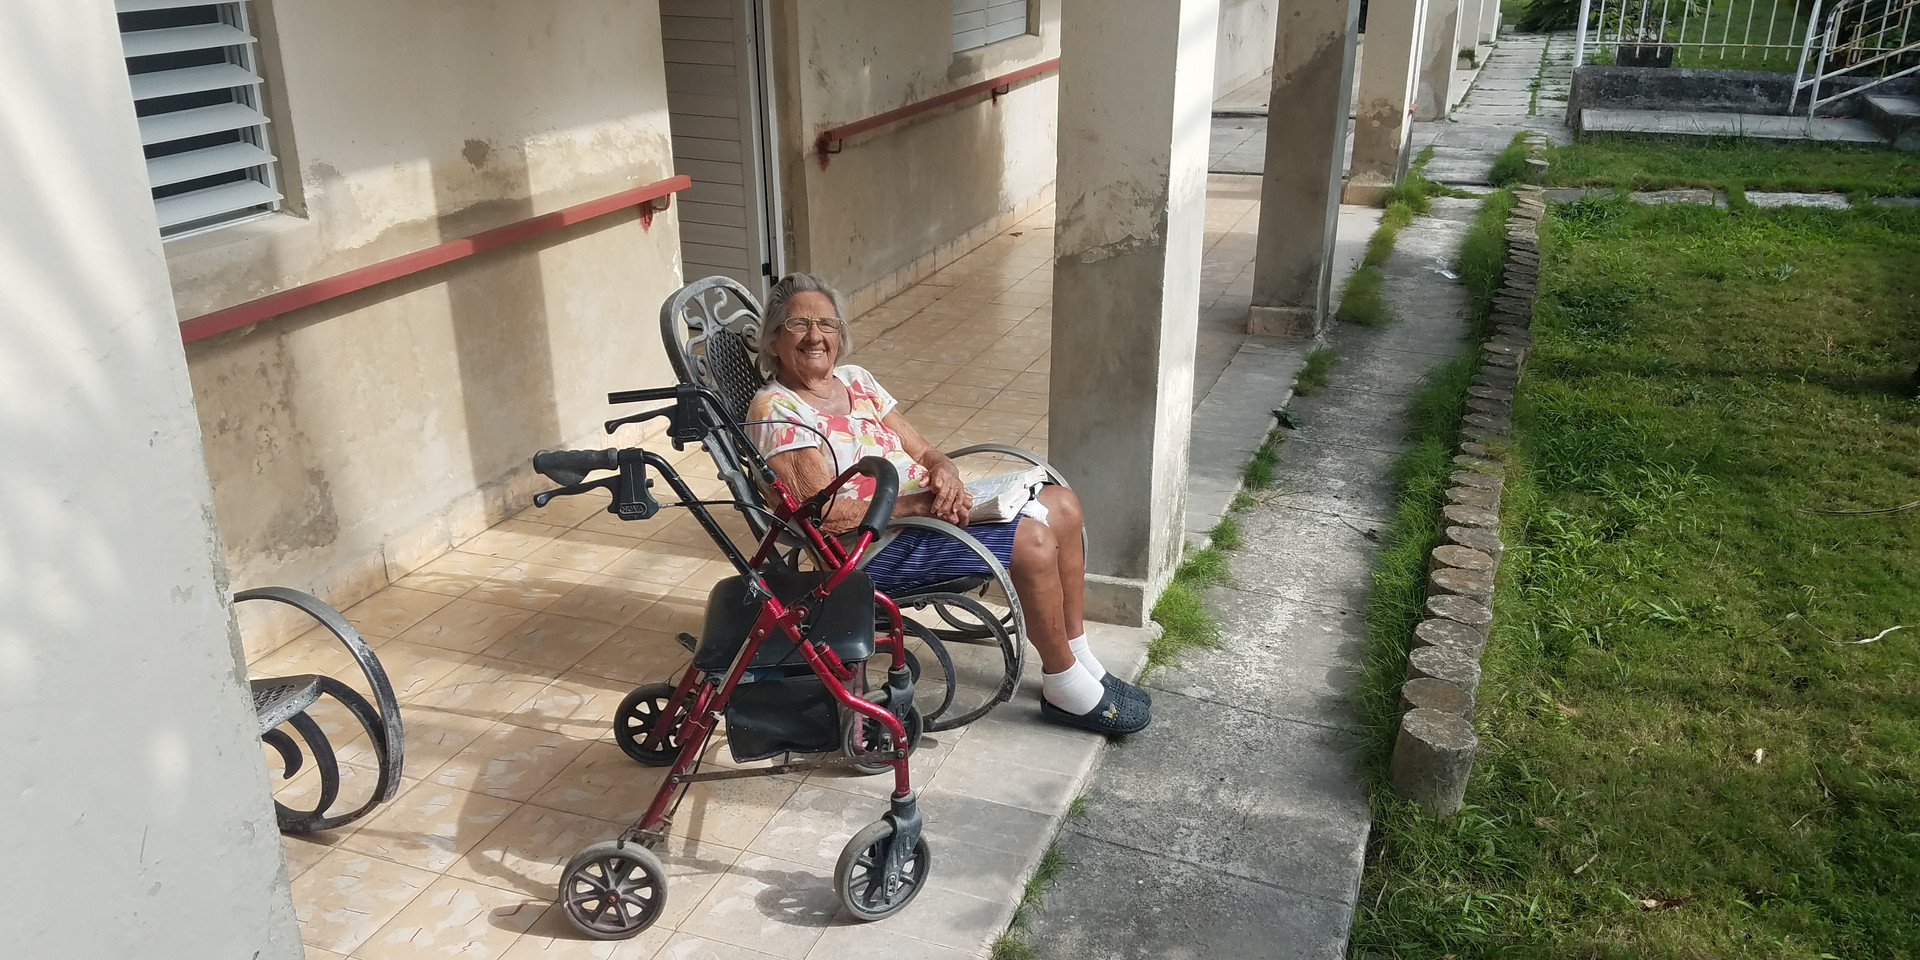 Woman at the elderly care facility